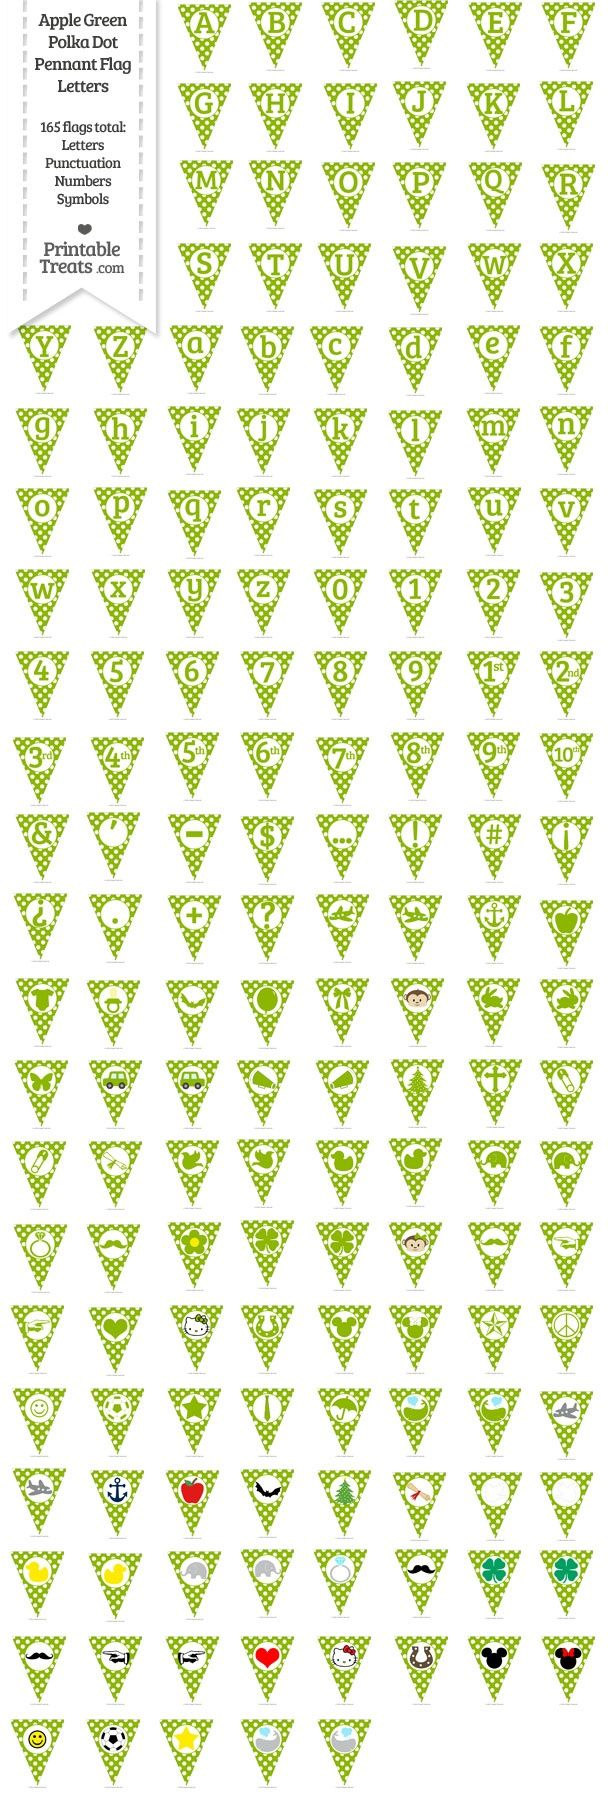 165 Apple Green Polka Dot Pennant Flag Letters Password